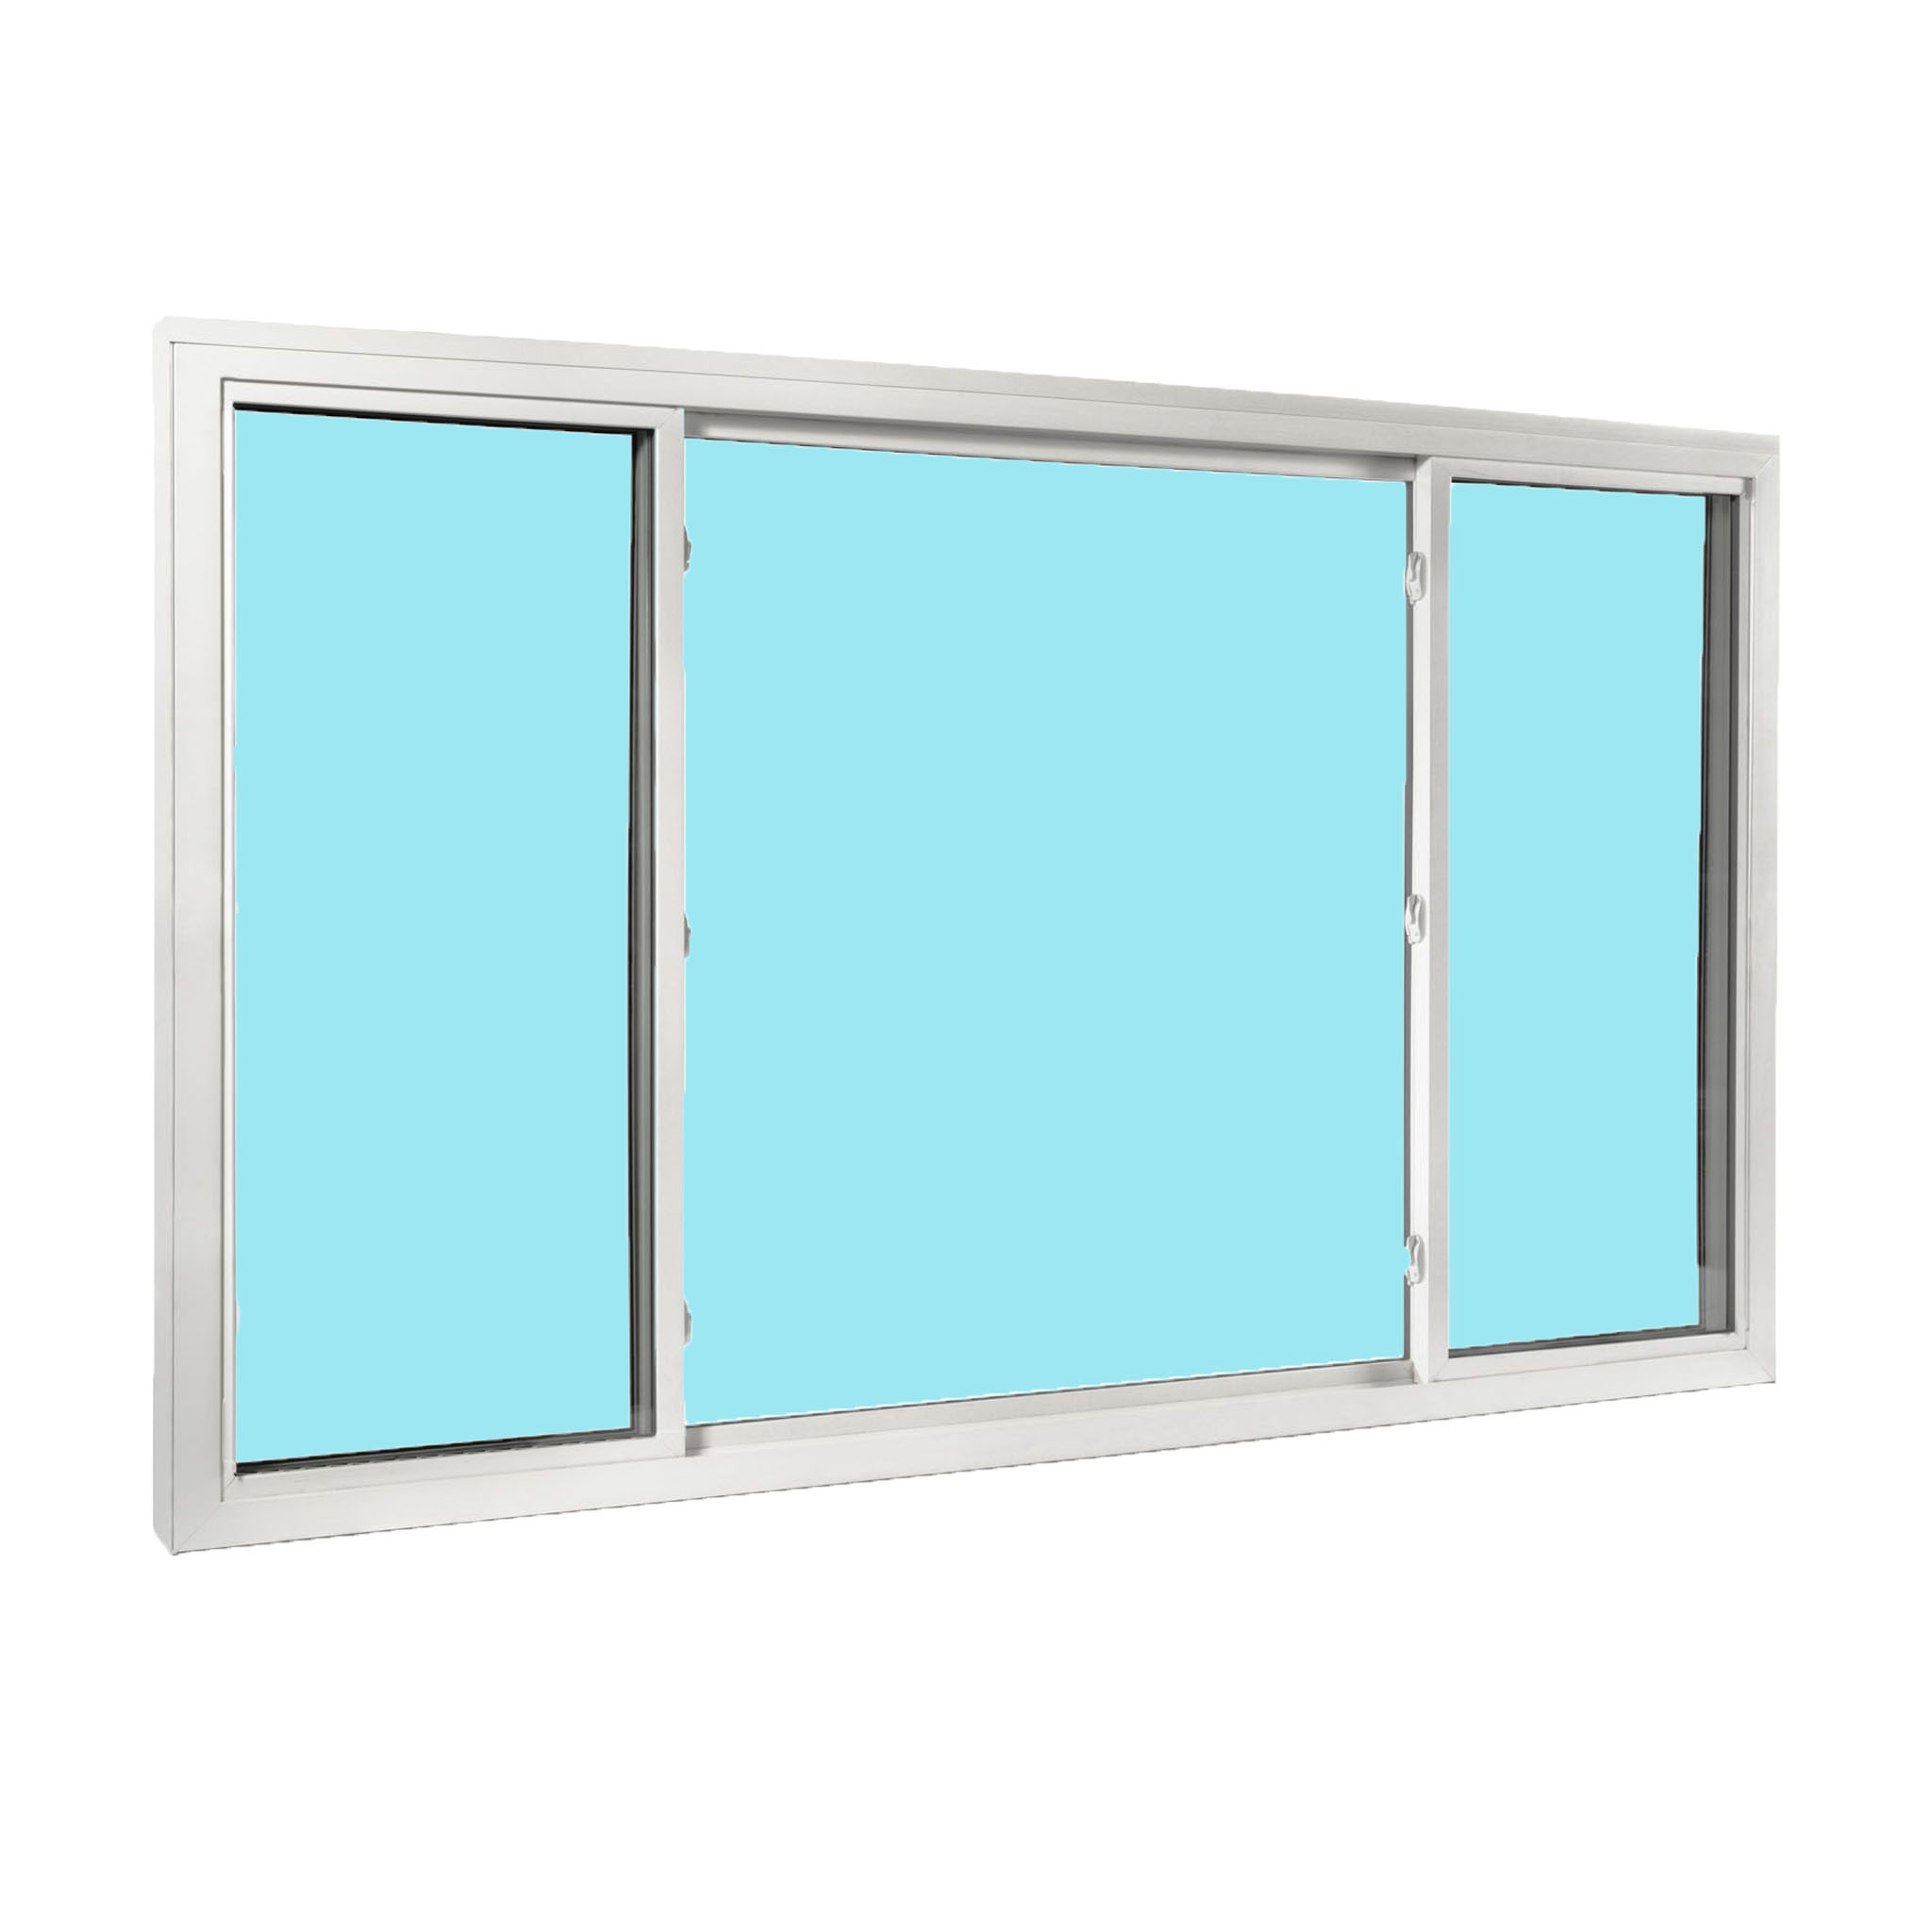 SL720 – REPLACEMENT SLIDER 3-LITE WELDED FRAME & SASH Image